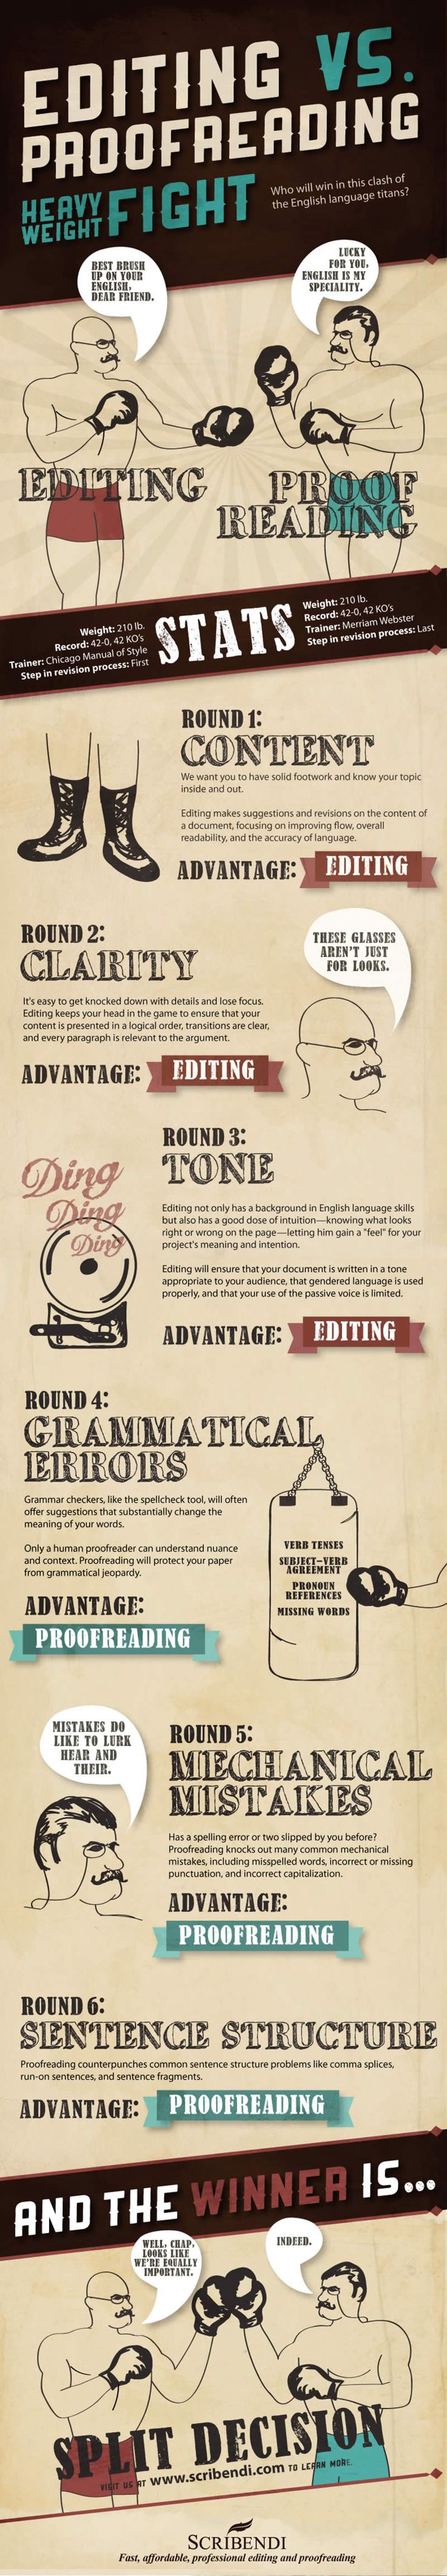 Editing vs Proofreading: Heavy Weight Fight #infographic